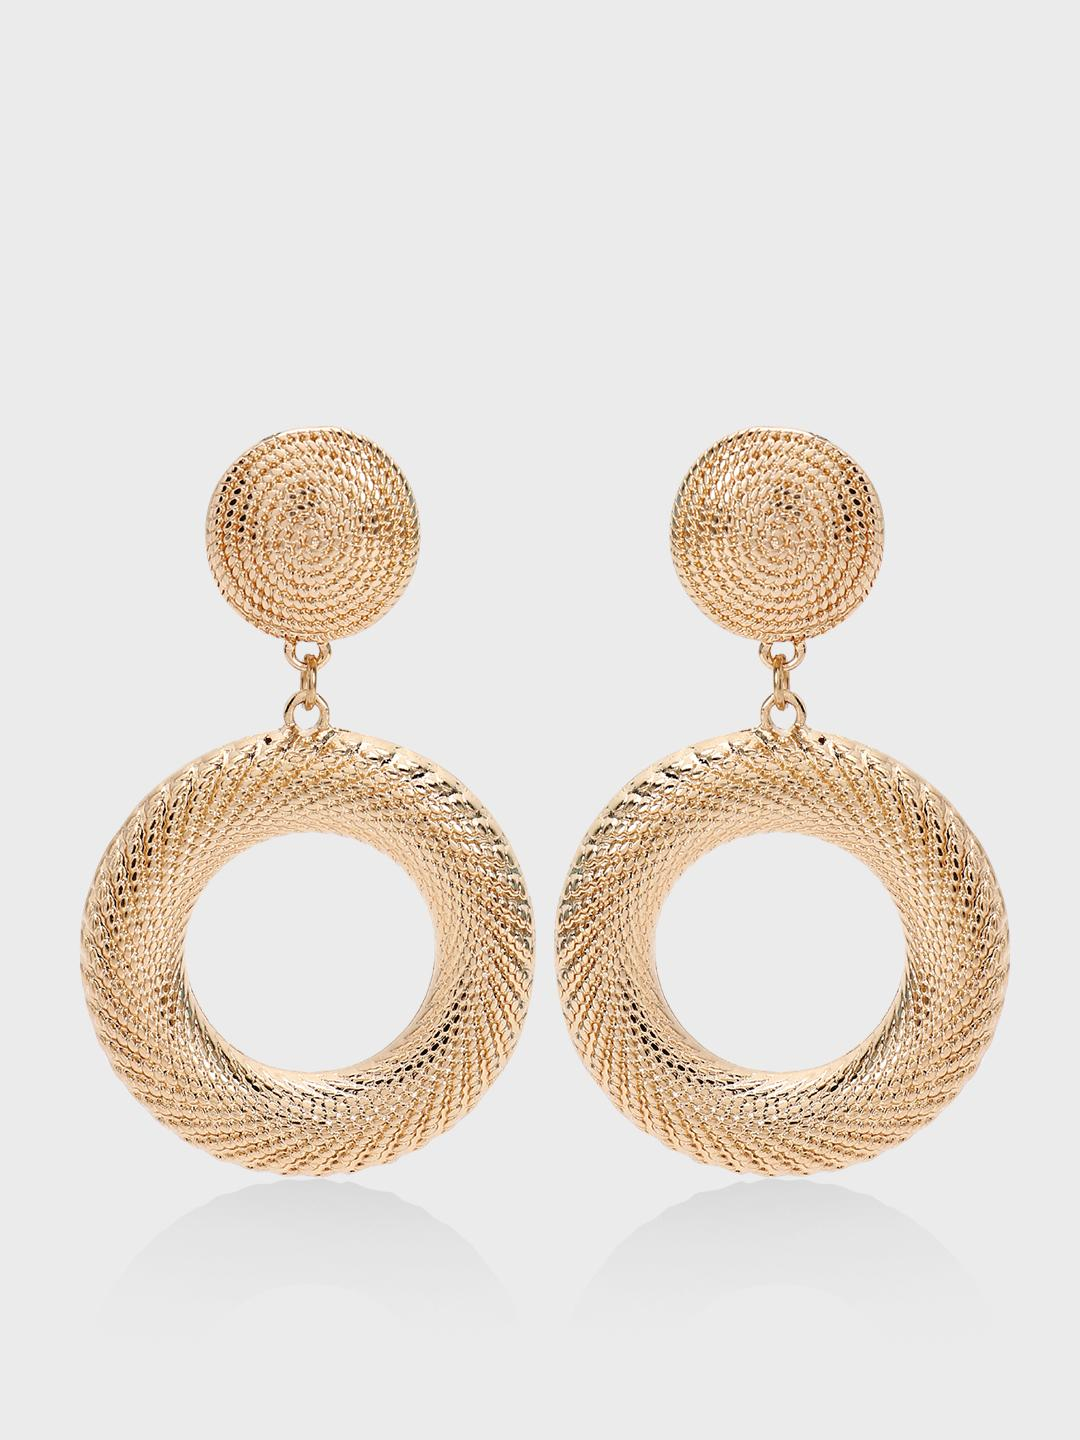 Origami Lily Gold Gold Textured Concentric Earrings 1